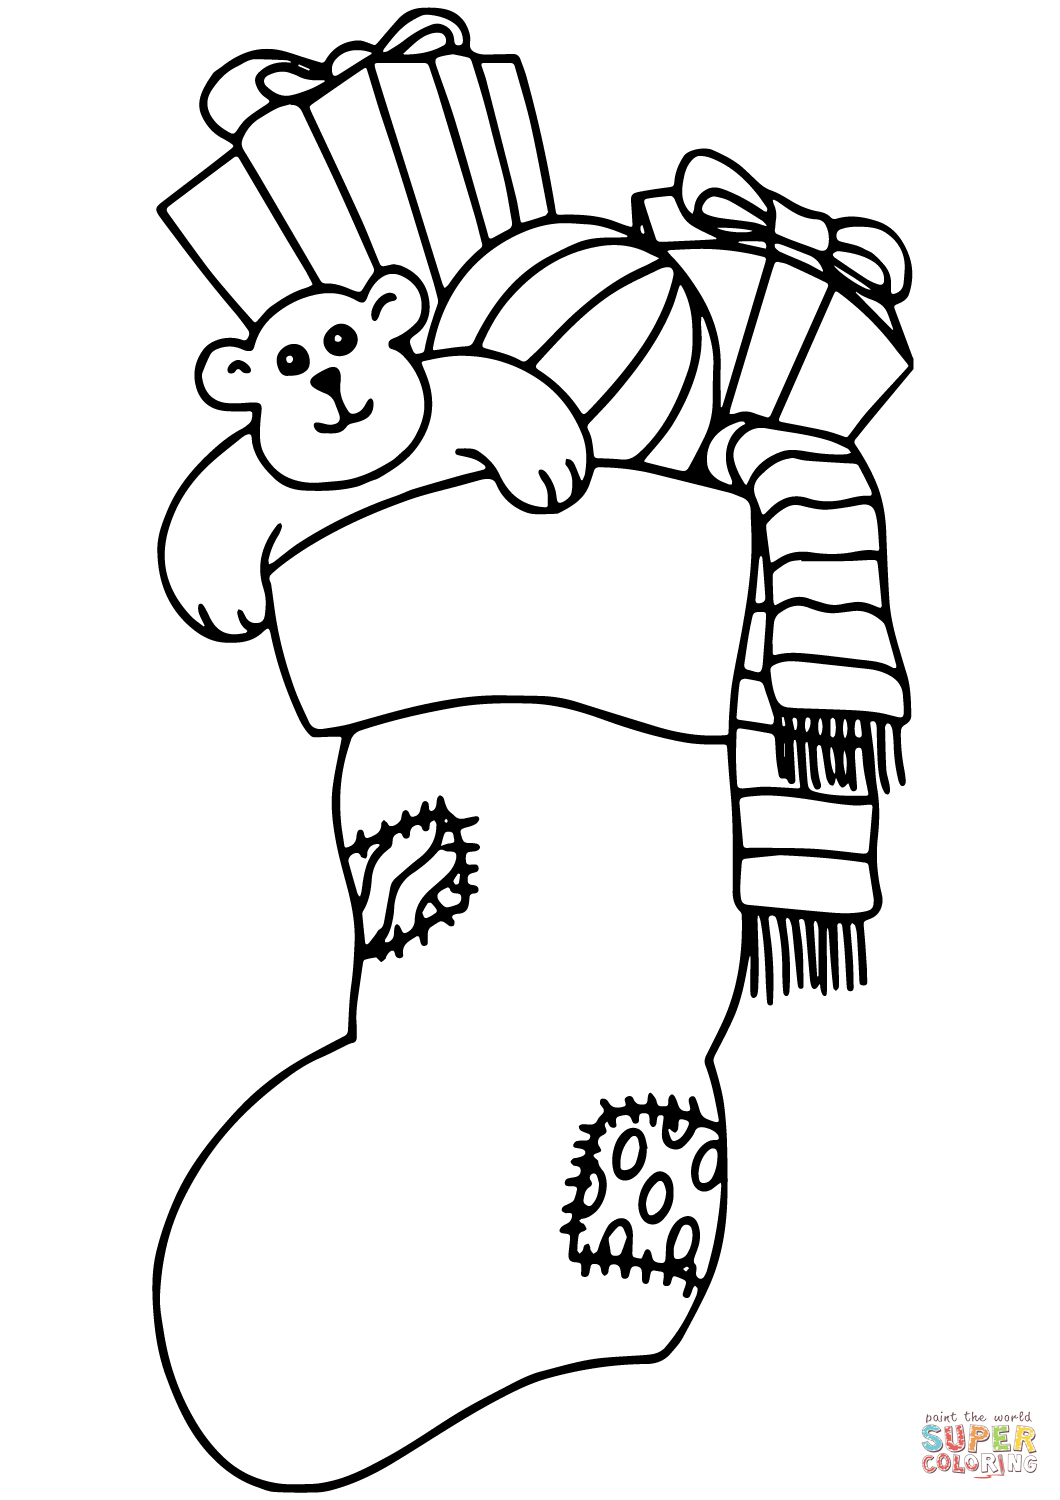 1060x1500 Christmas Stocking Filled With Gifts Coloring Page Free